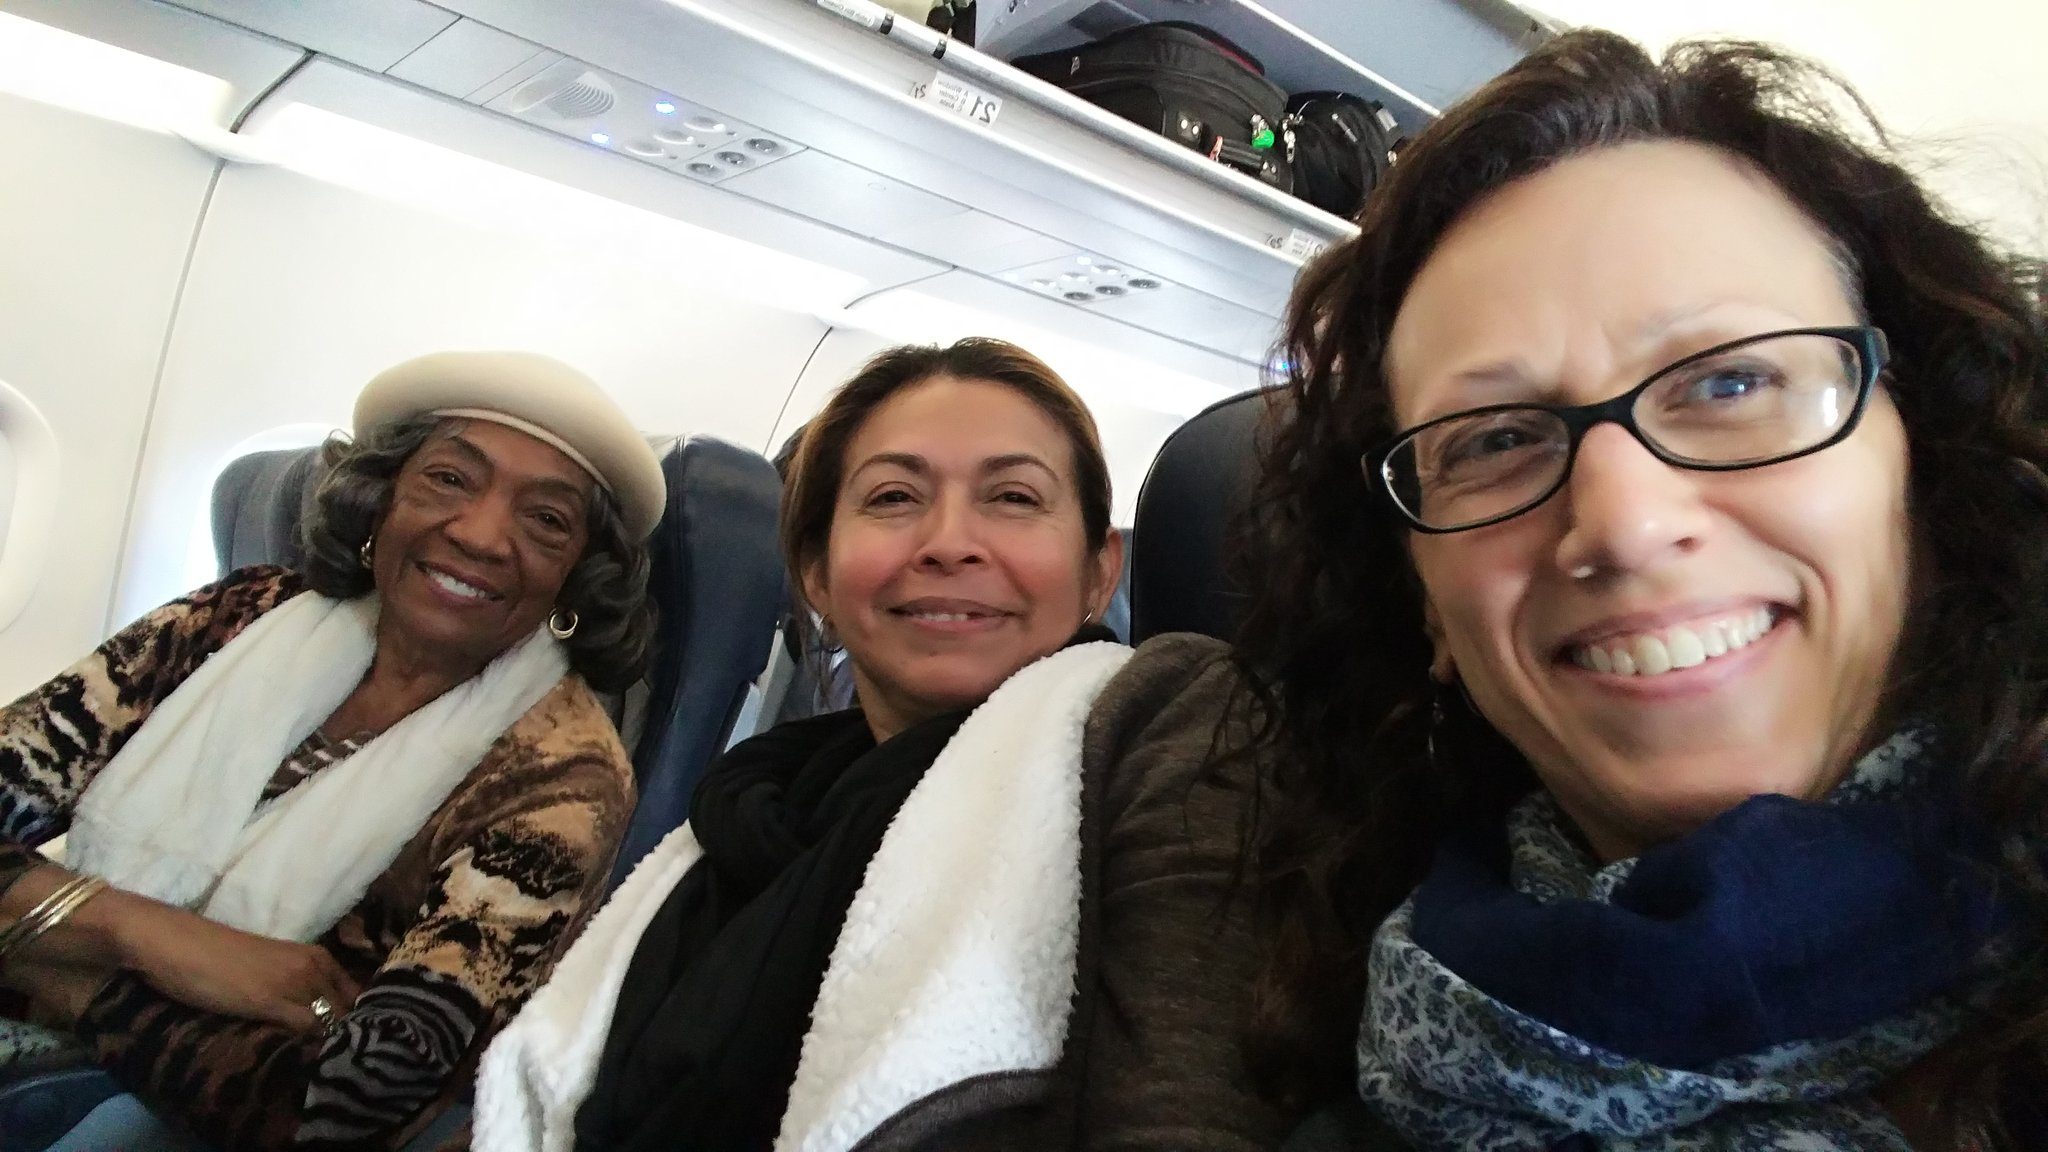 En route to Philly for #CENTERINGCARE conference with @CCEHI_Rosa and Ms. Edna! Great day! @CCEHI https://t.co/k1zVqJbmqy